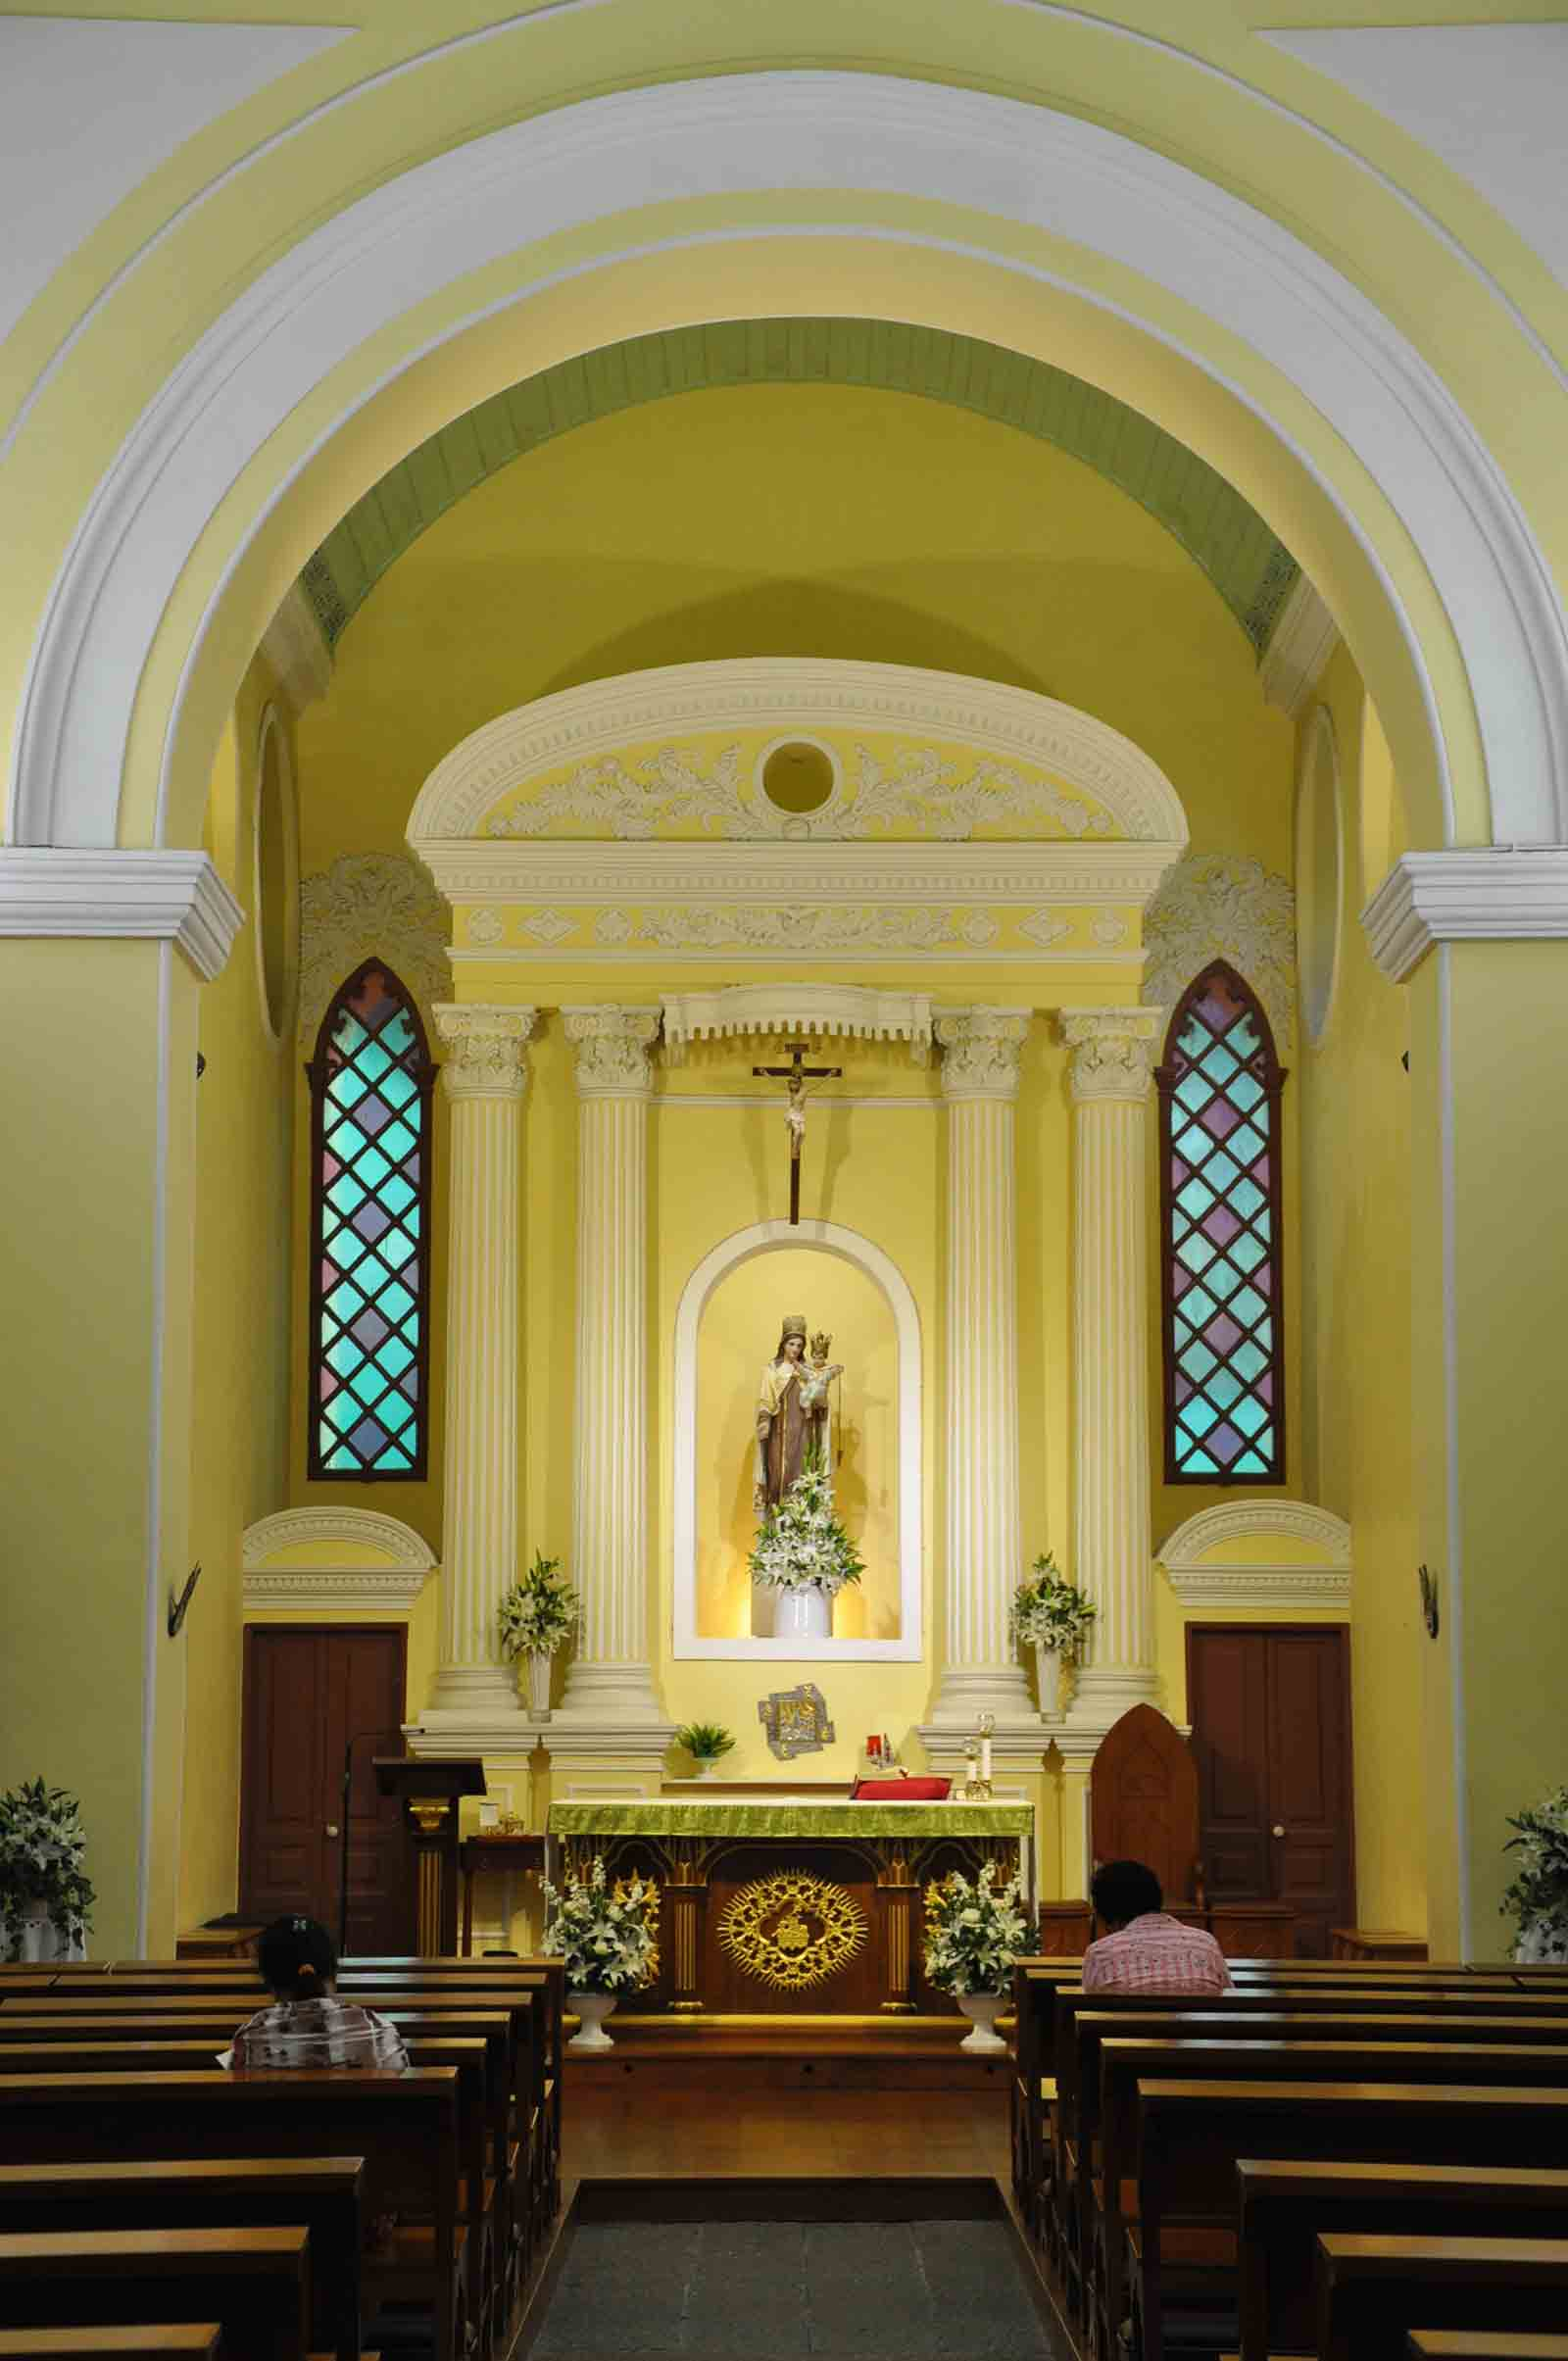 Our Lady Of Carmel Church main altar